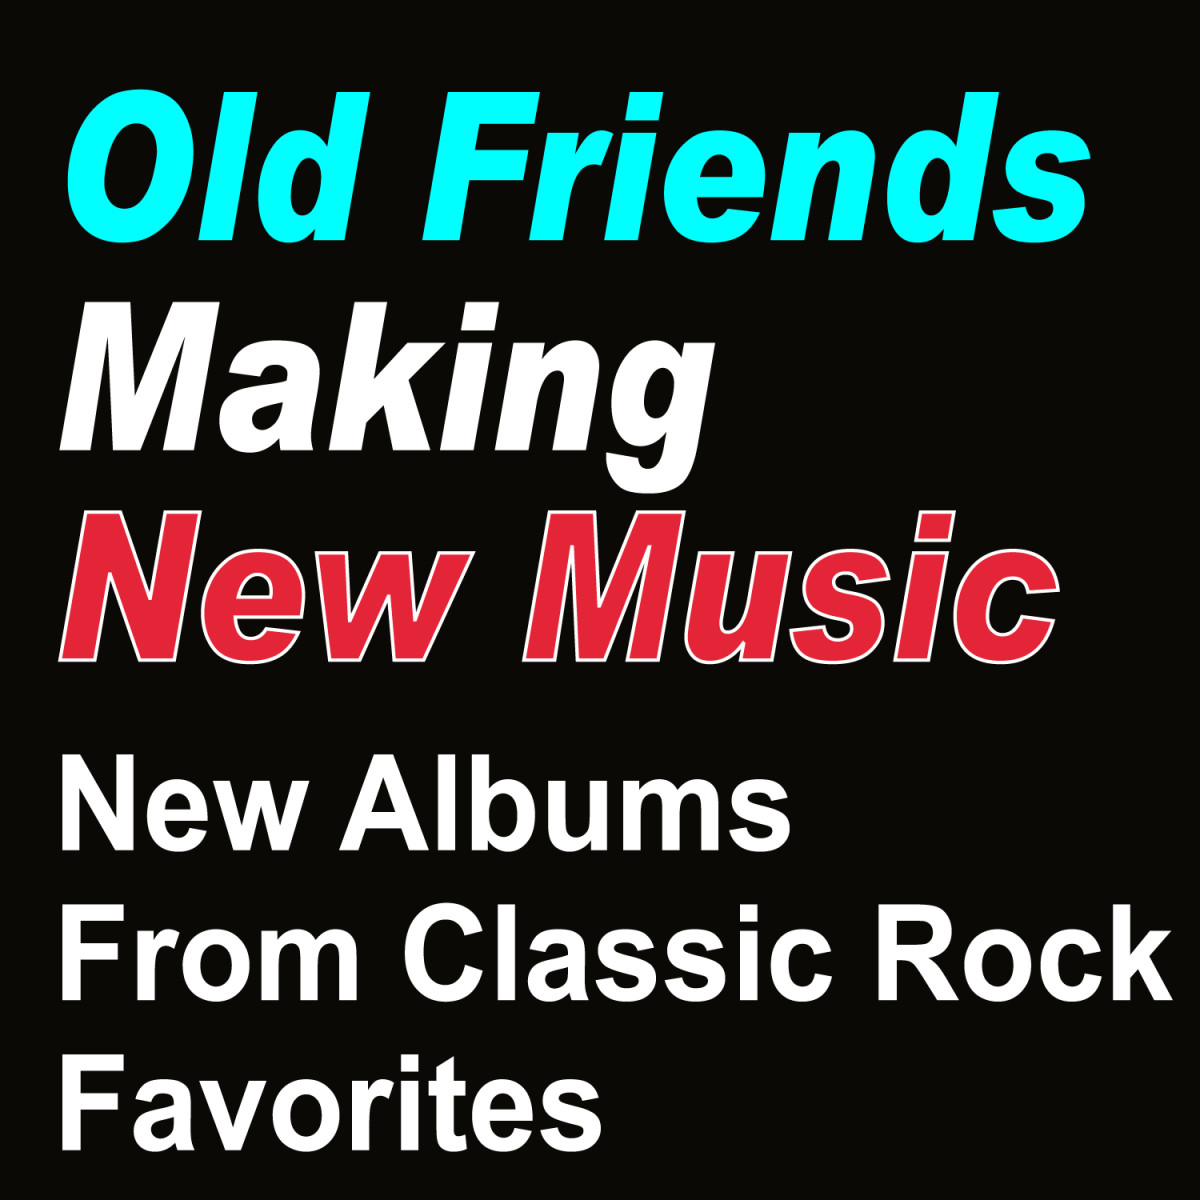 New Albums From Classic Rock Artists